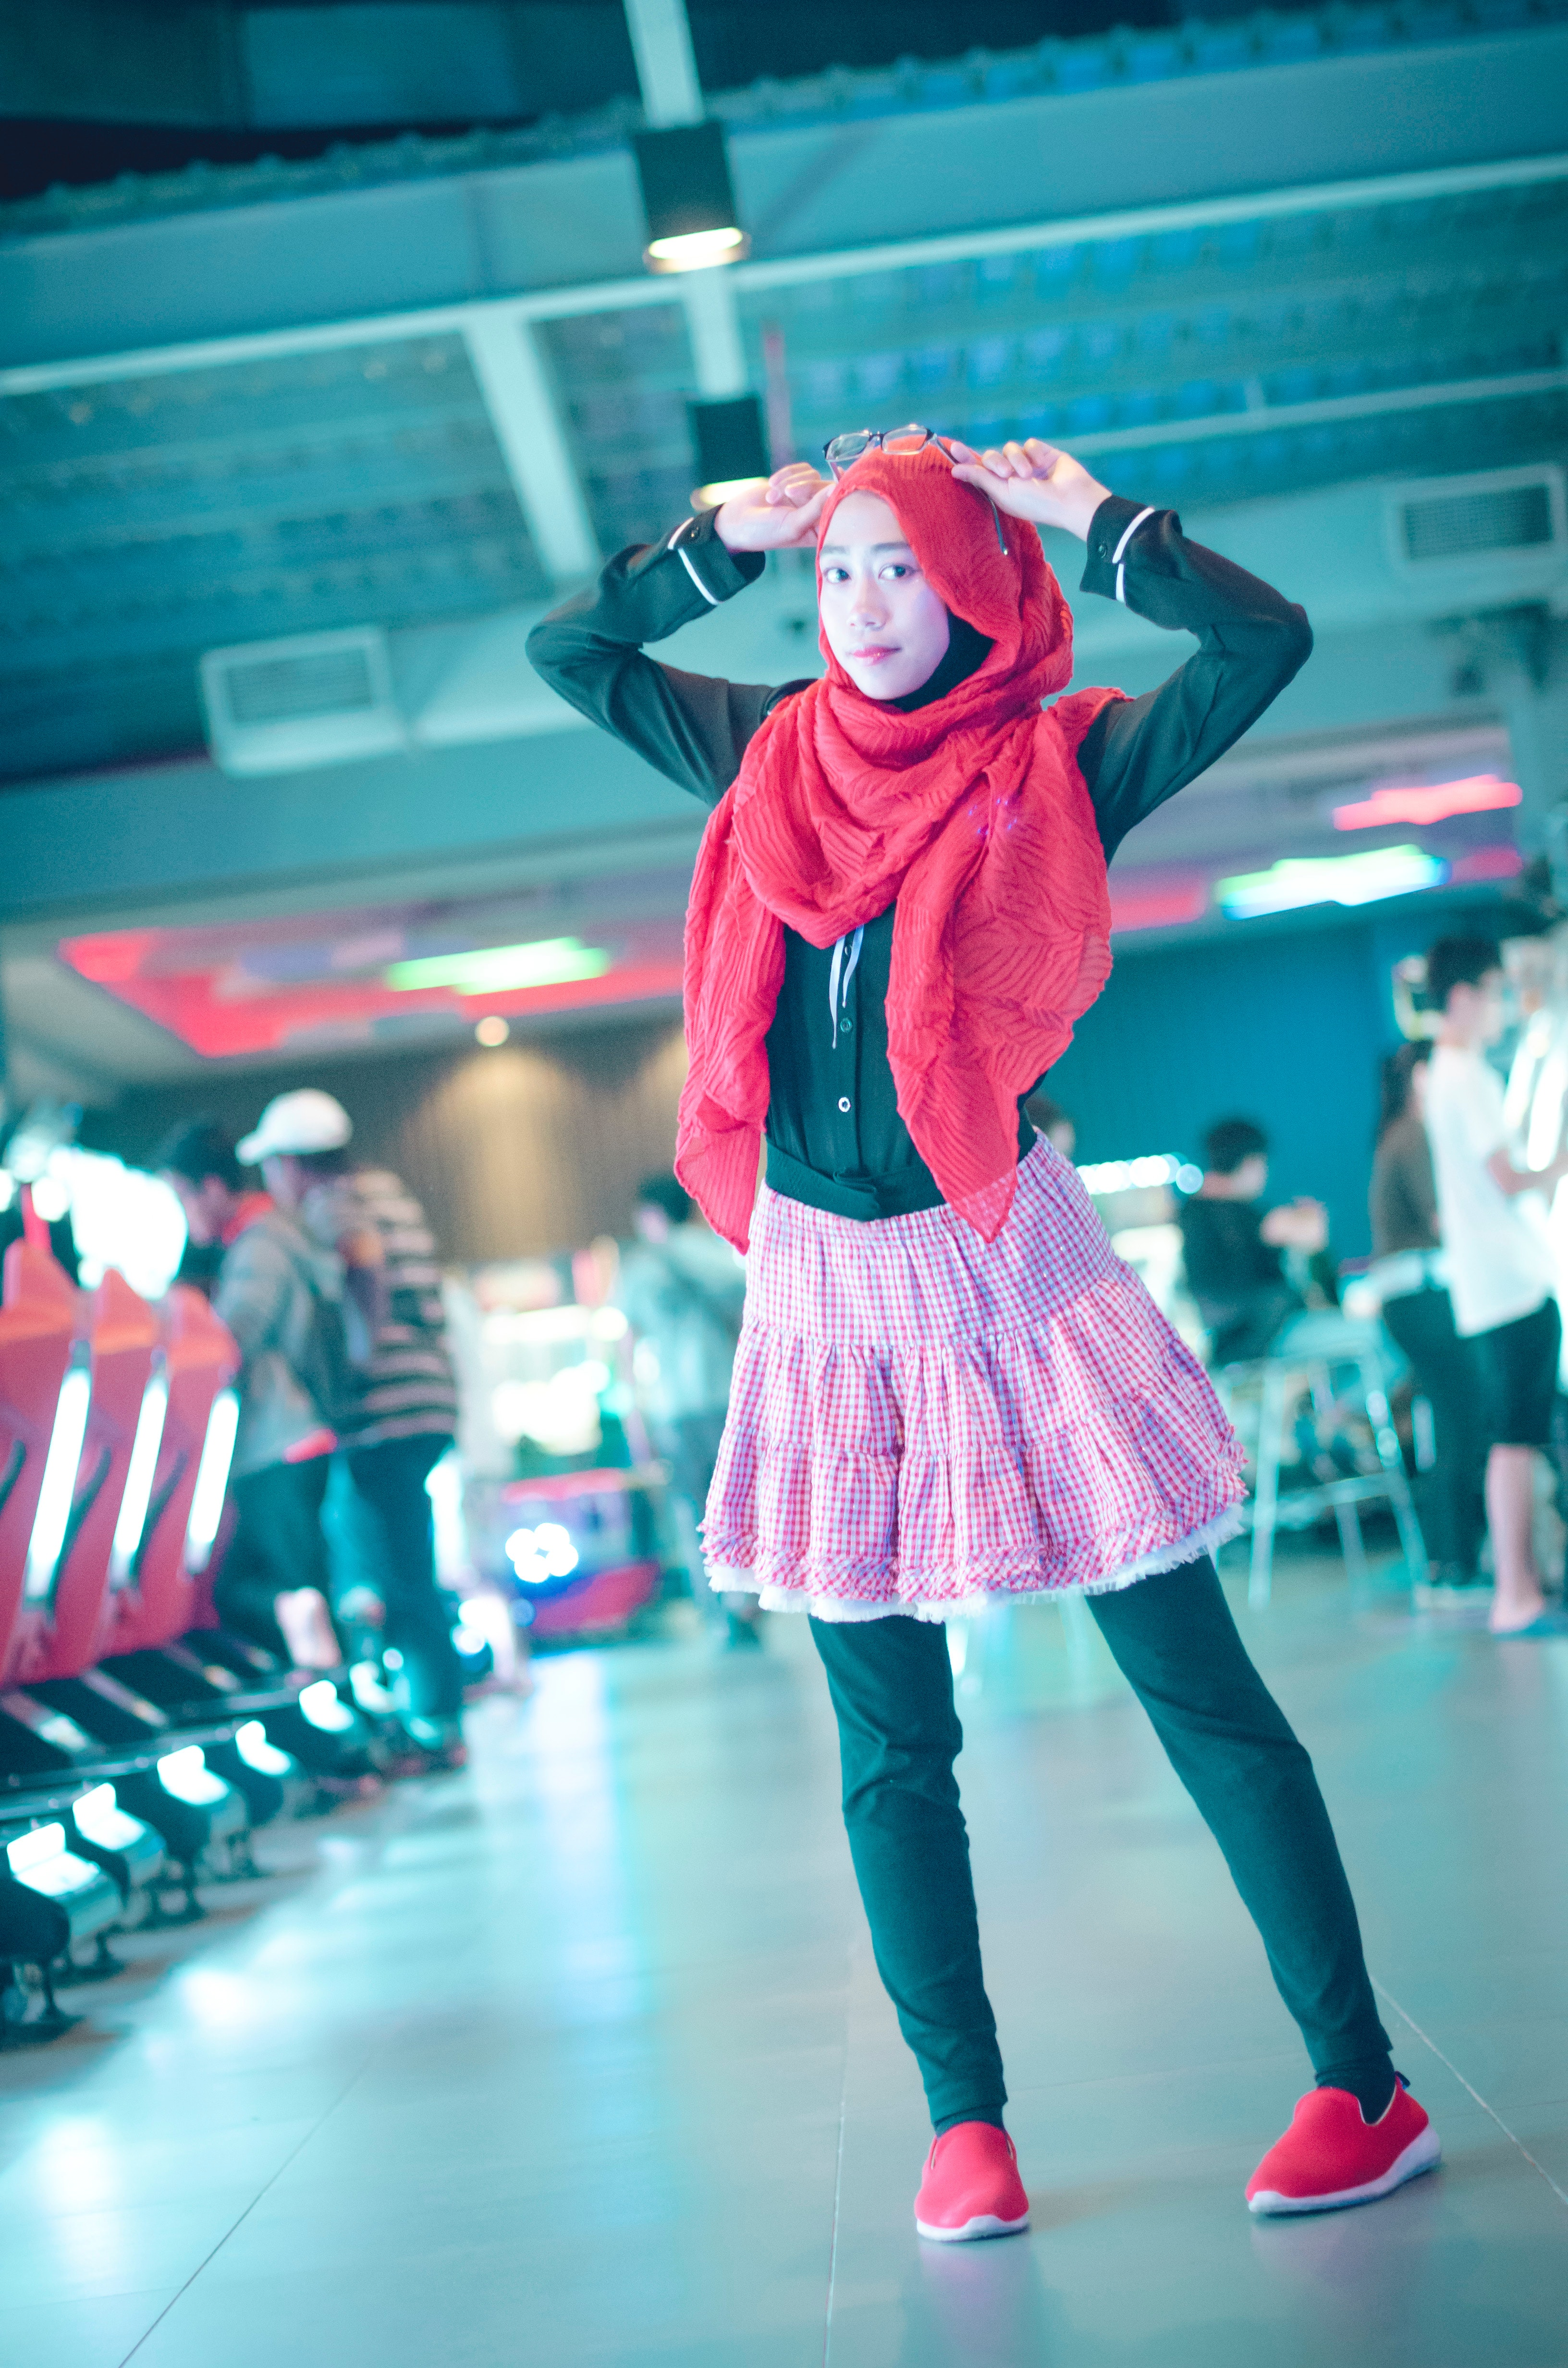 Woman in Red Head Scarf With Black Dress Shirt and Pink Skirt, Arcade, Modern, Woman, Wear, HQ Photo